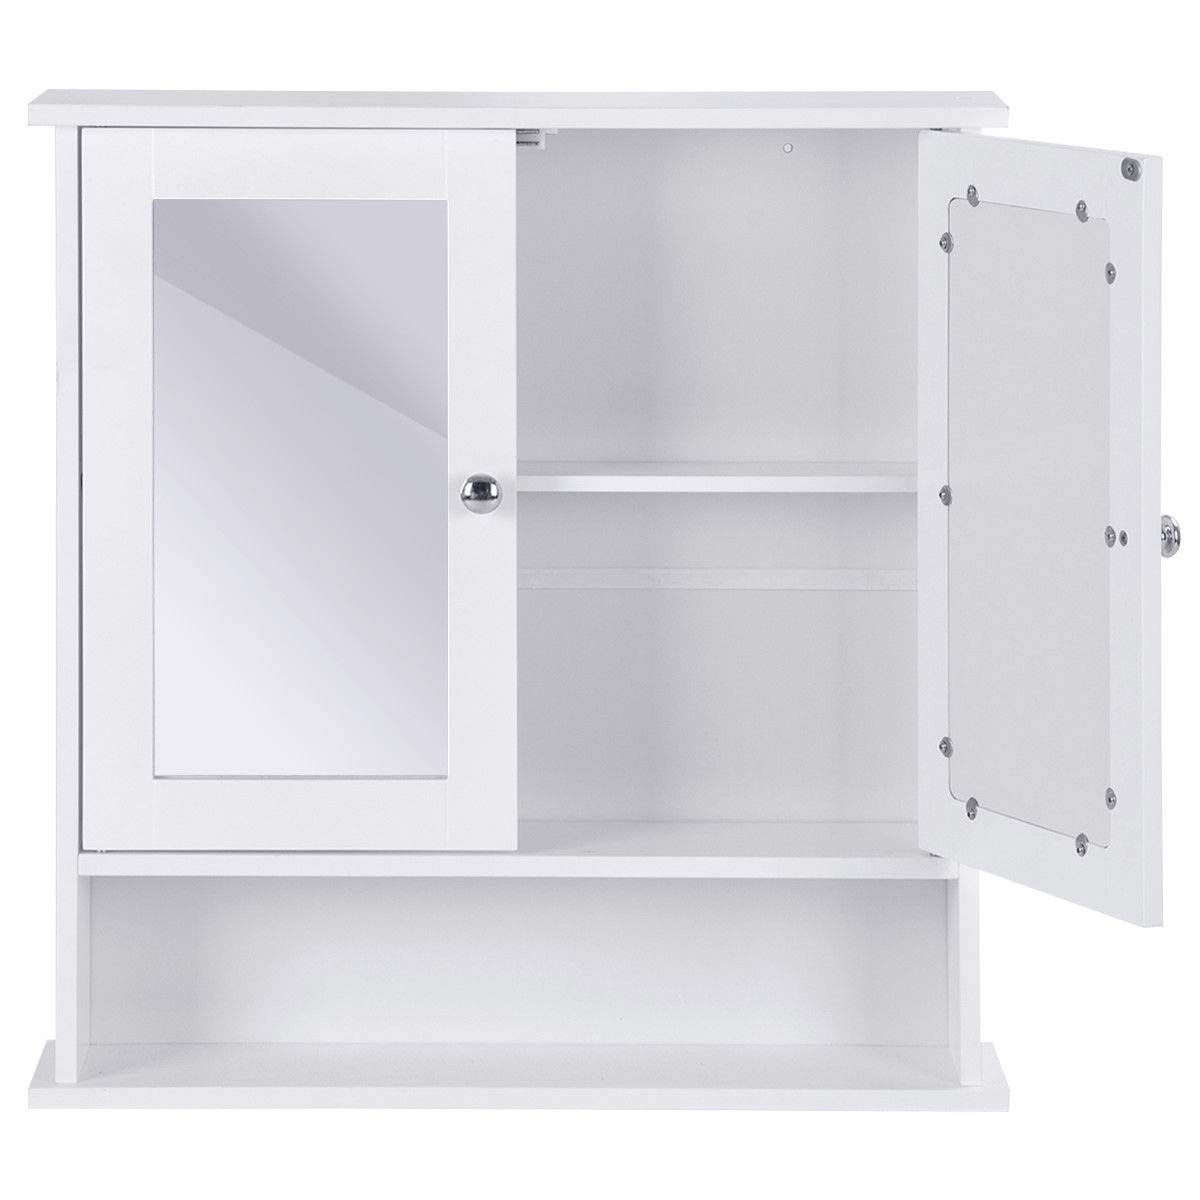 KCHEX>>>New Bathroom Wall Cabinet Double Mirror Door Cupboard Storage Wood Shelf White>Still worry about no space to put your essentials in the bathroom? Our bathroom wall-mounted cabinet with two